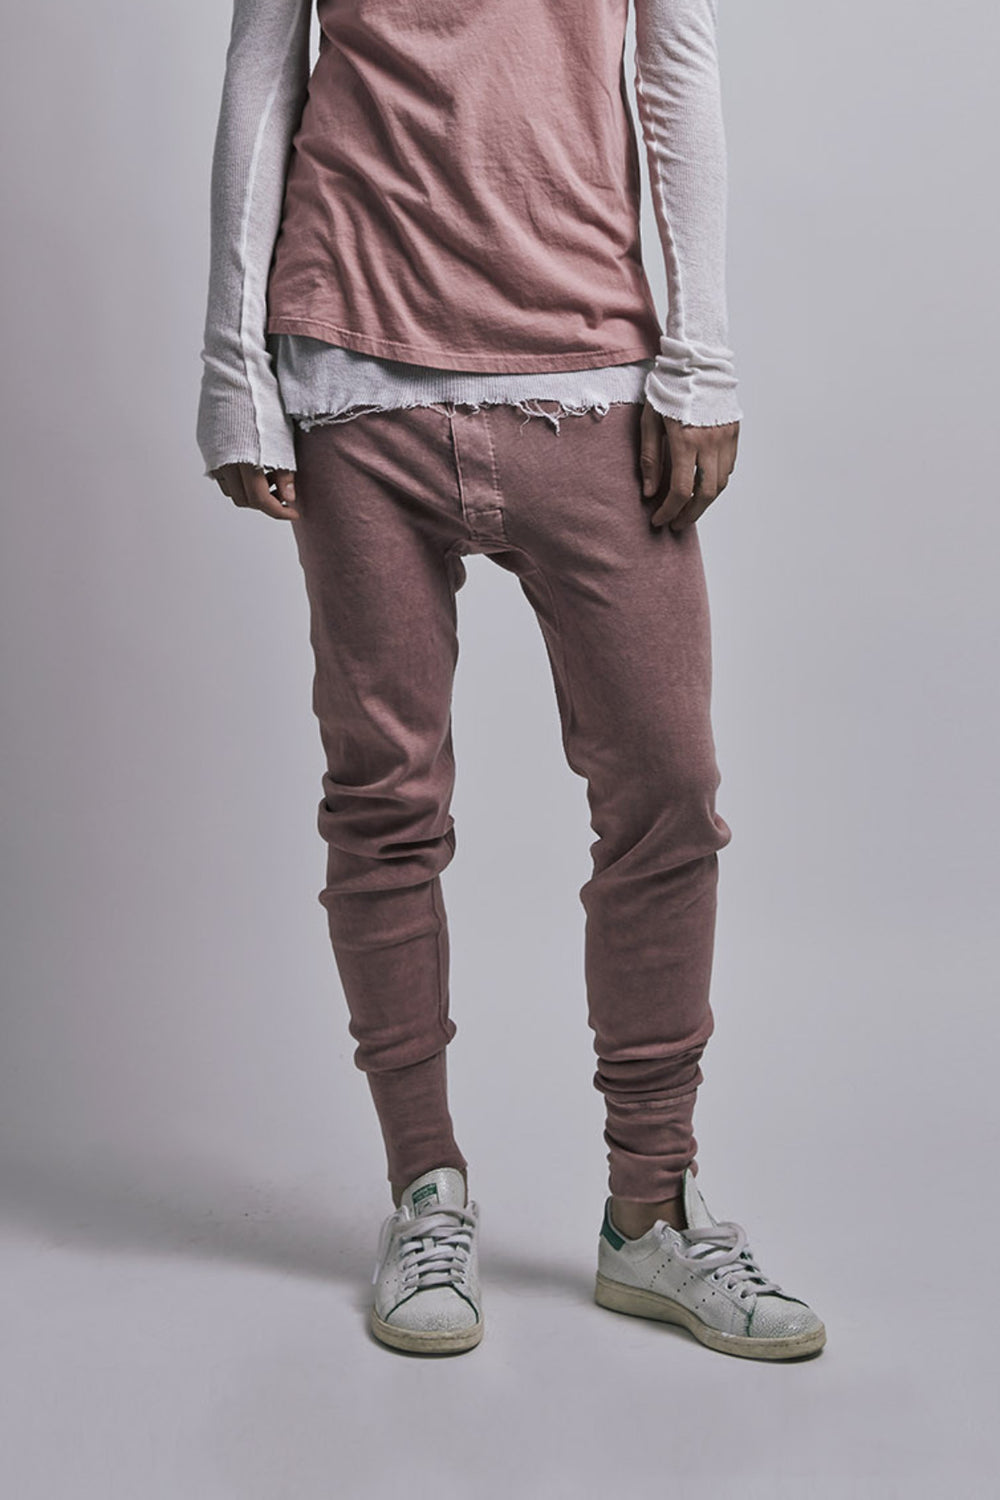 Rose Long Johns